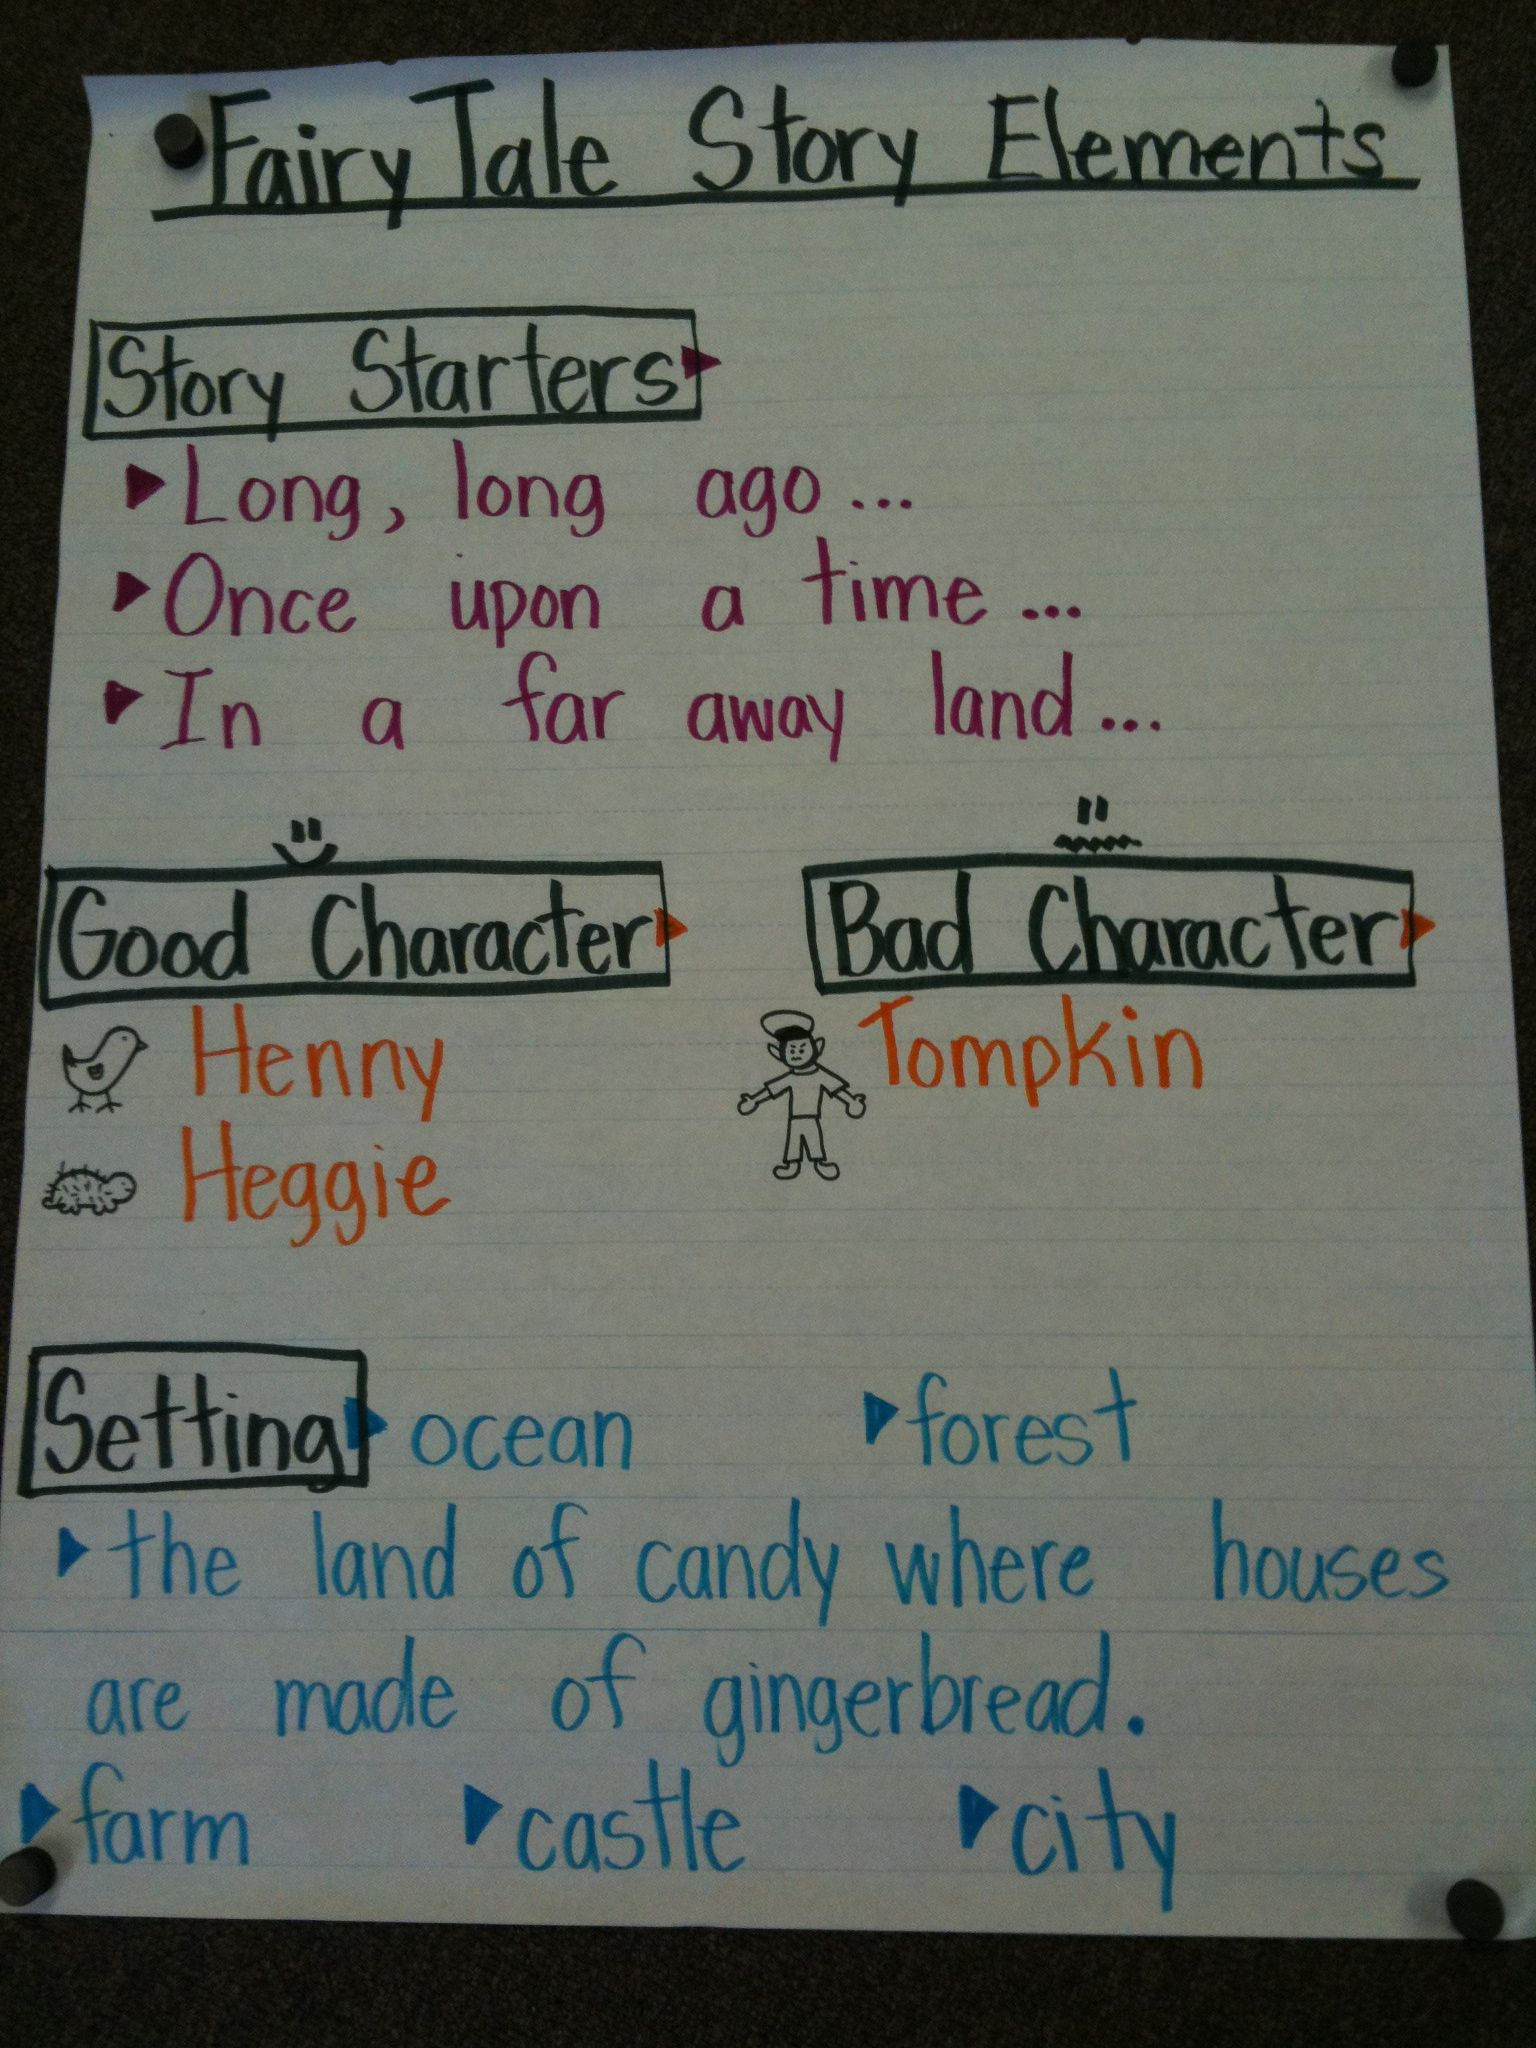 Story Elements For Fairy Tales Part 1